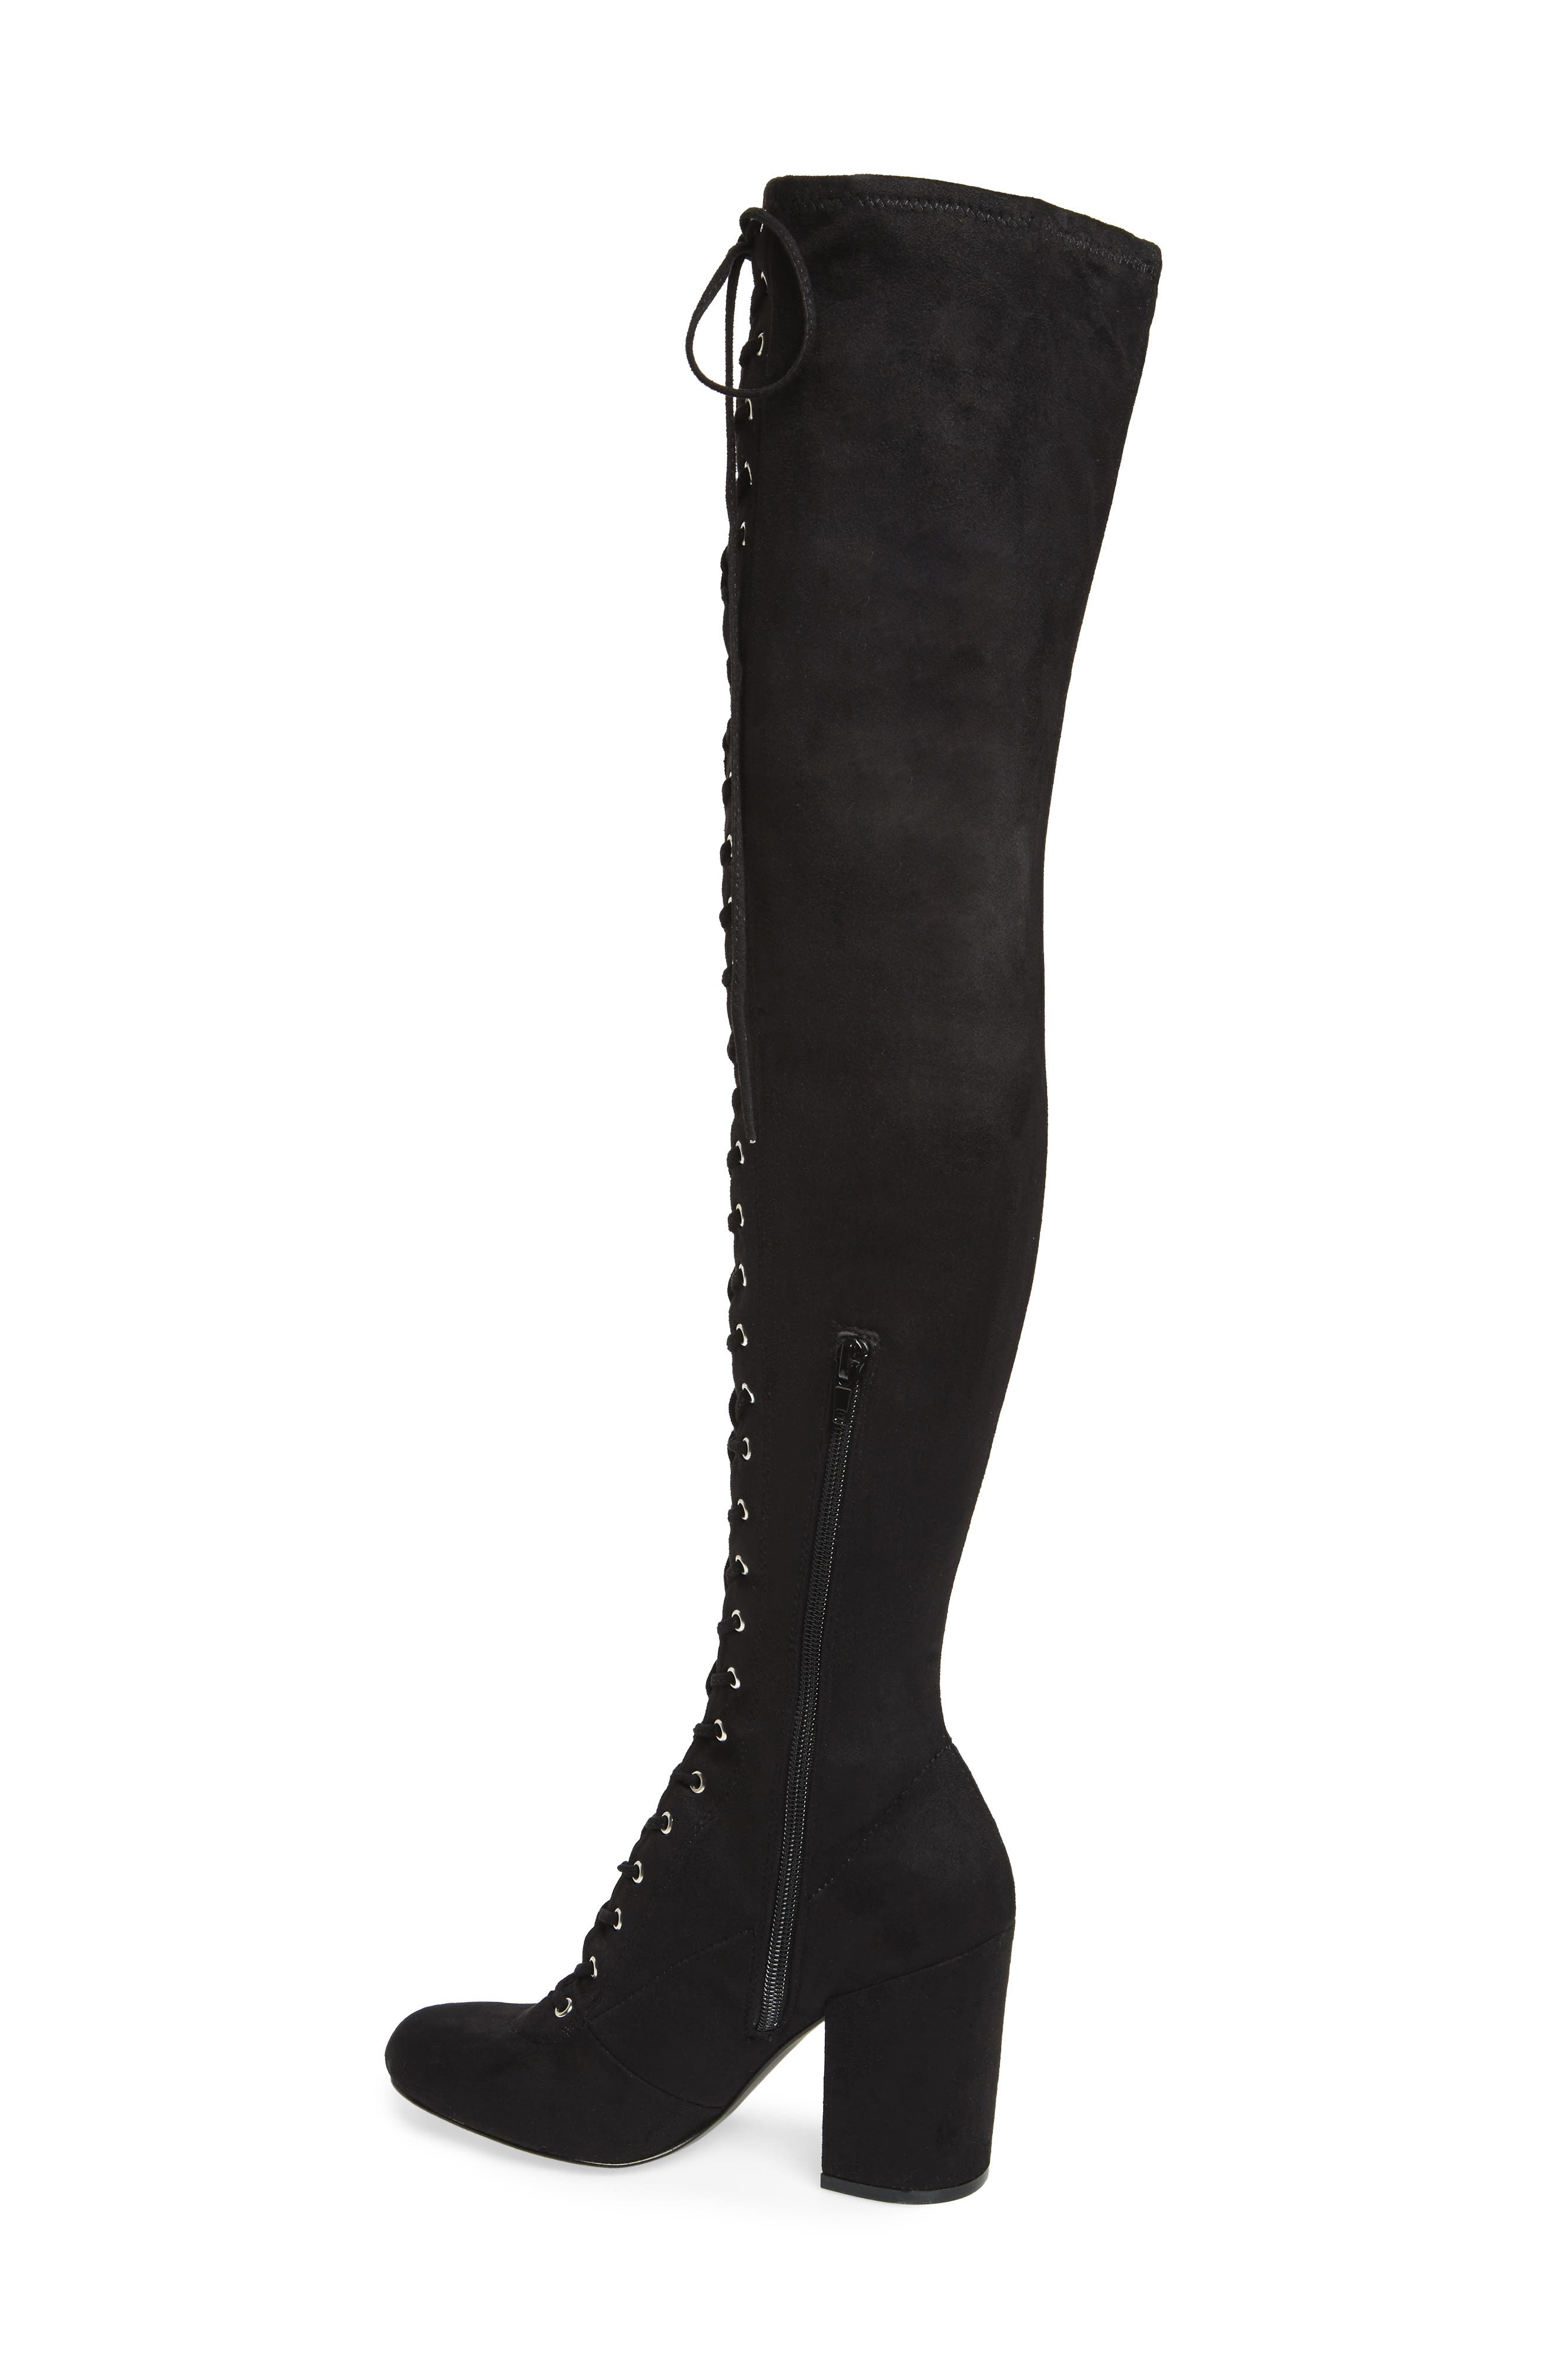 General Over the Knee Boot,                             Alternate thumbnail 2, color,                             Black Suede